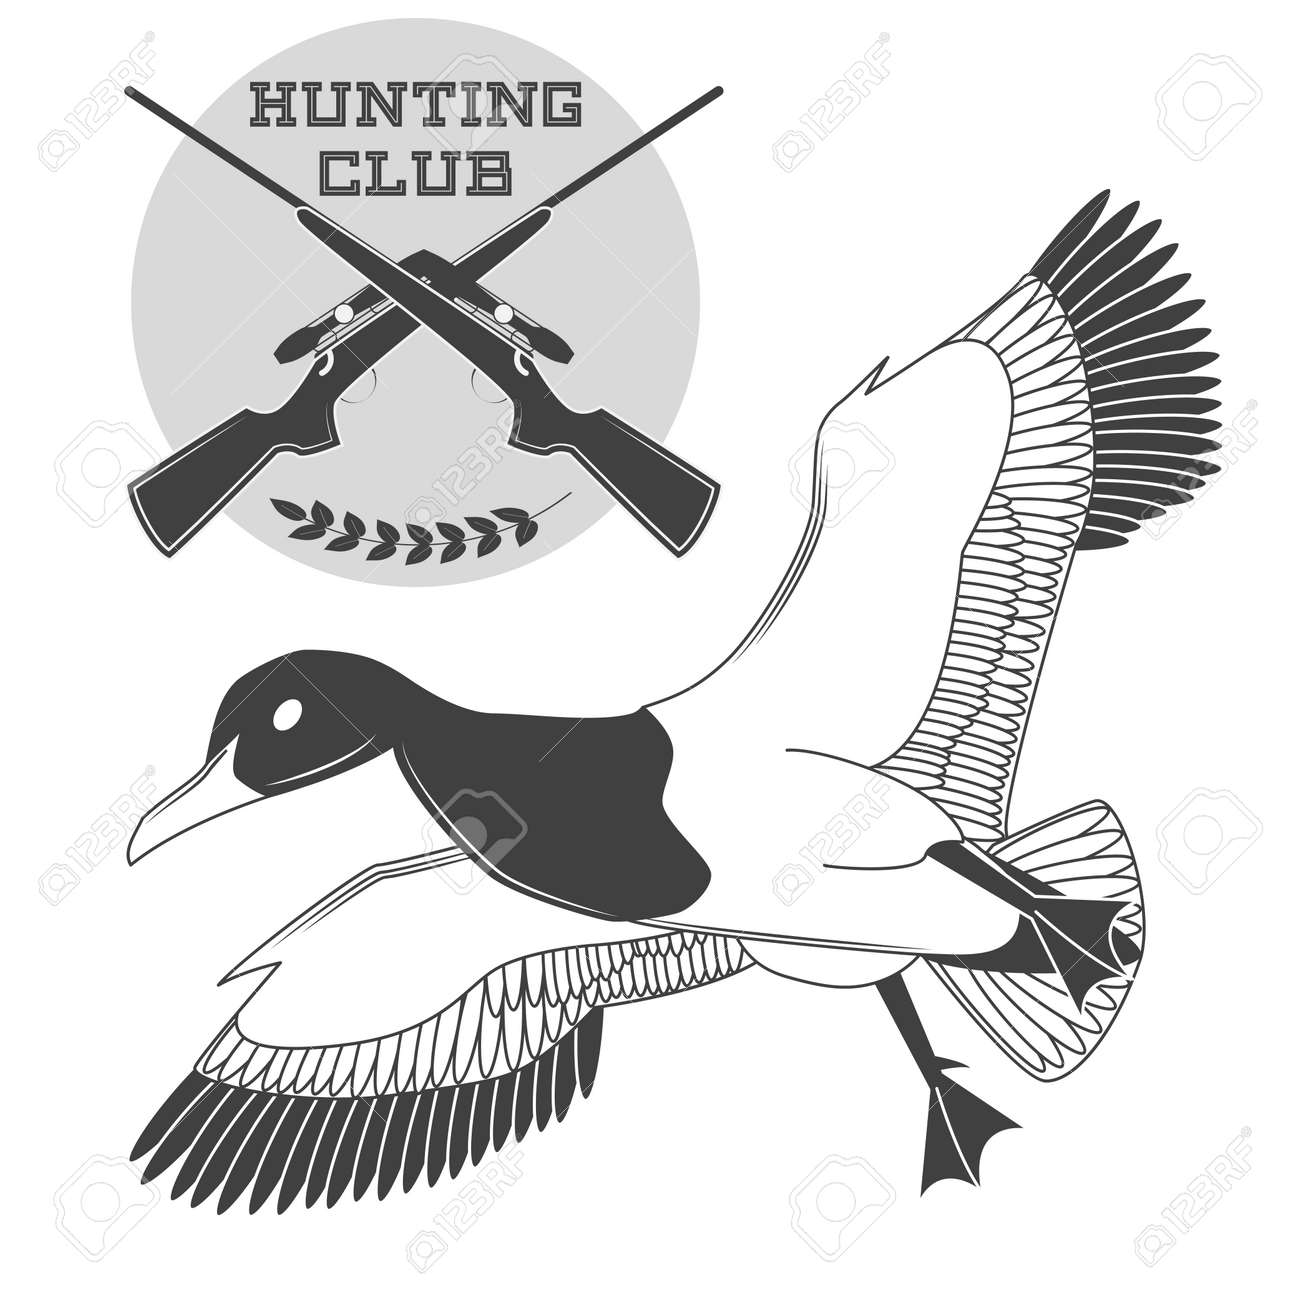 Vintage label with a duck, weapons for lucky hunting club  Vector